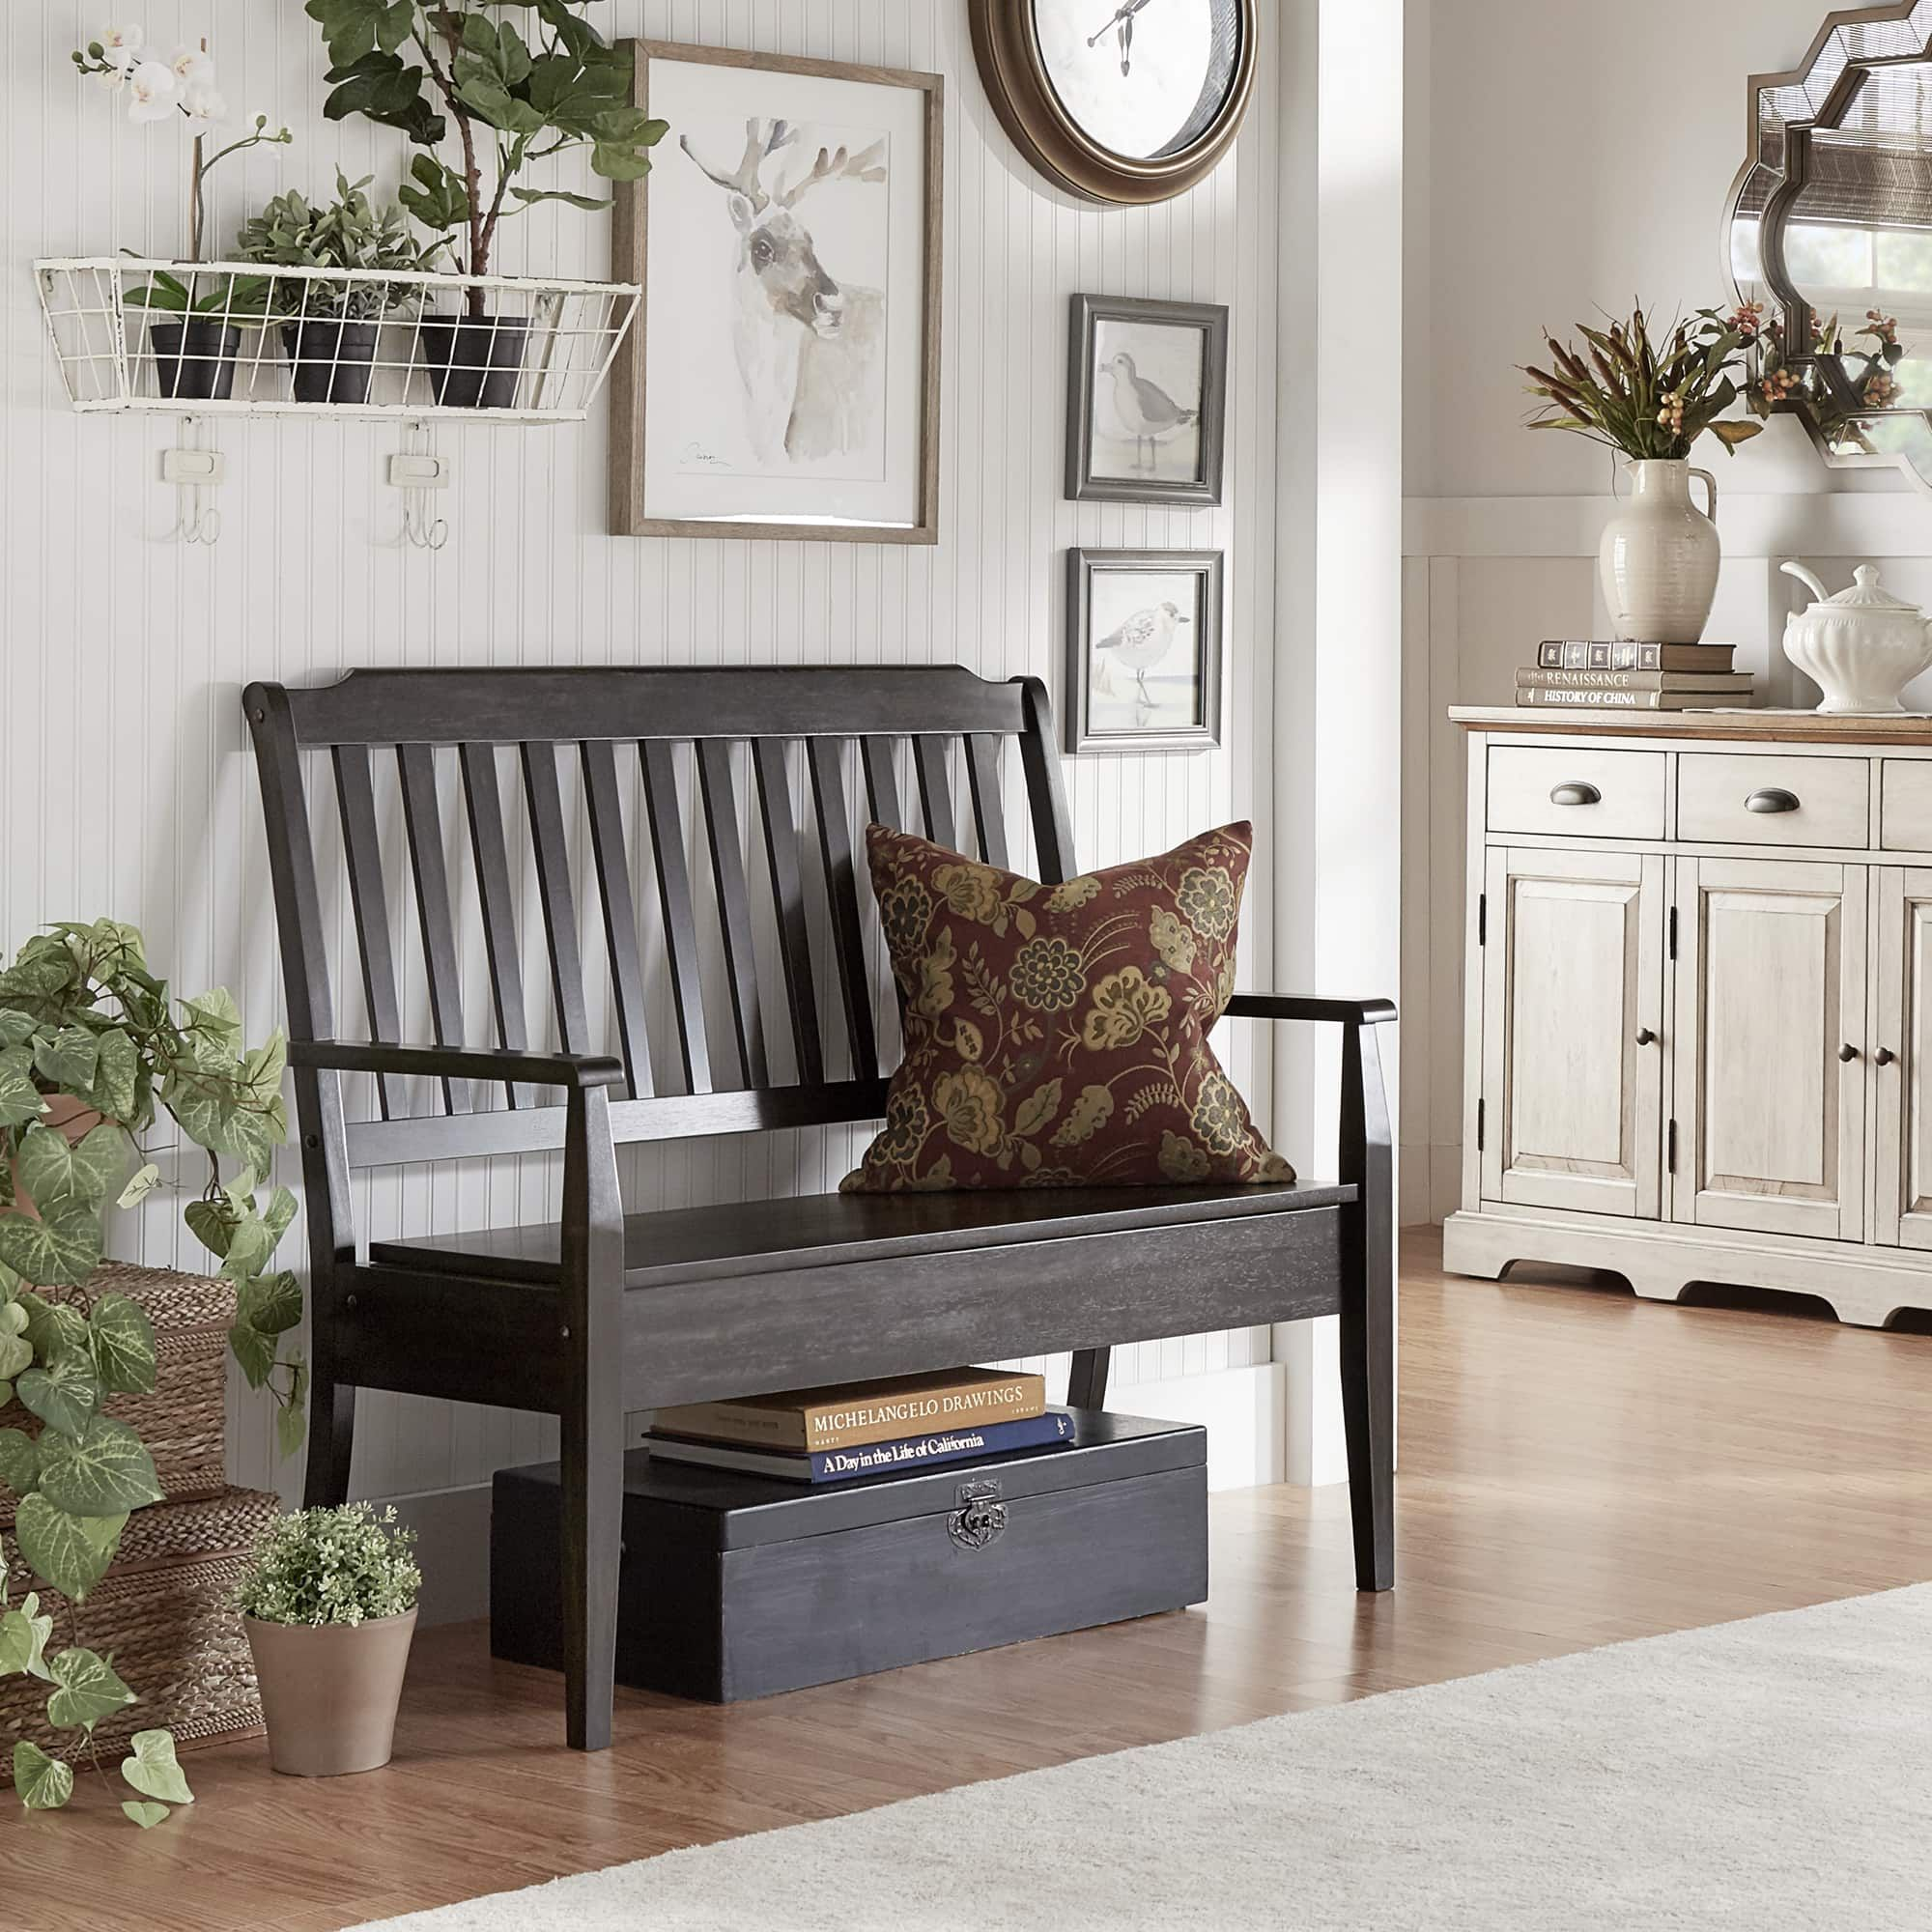 Eleanor Slat Back Wood Storage Bench by iNSPIRE Q Classic - Free Shipping  Today - Overstock